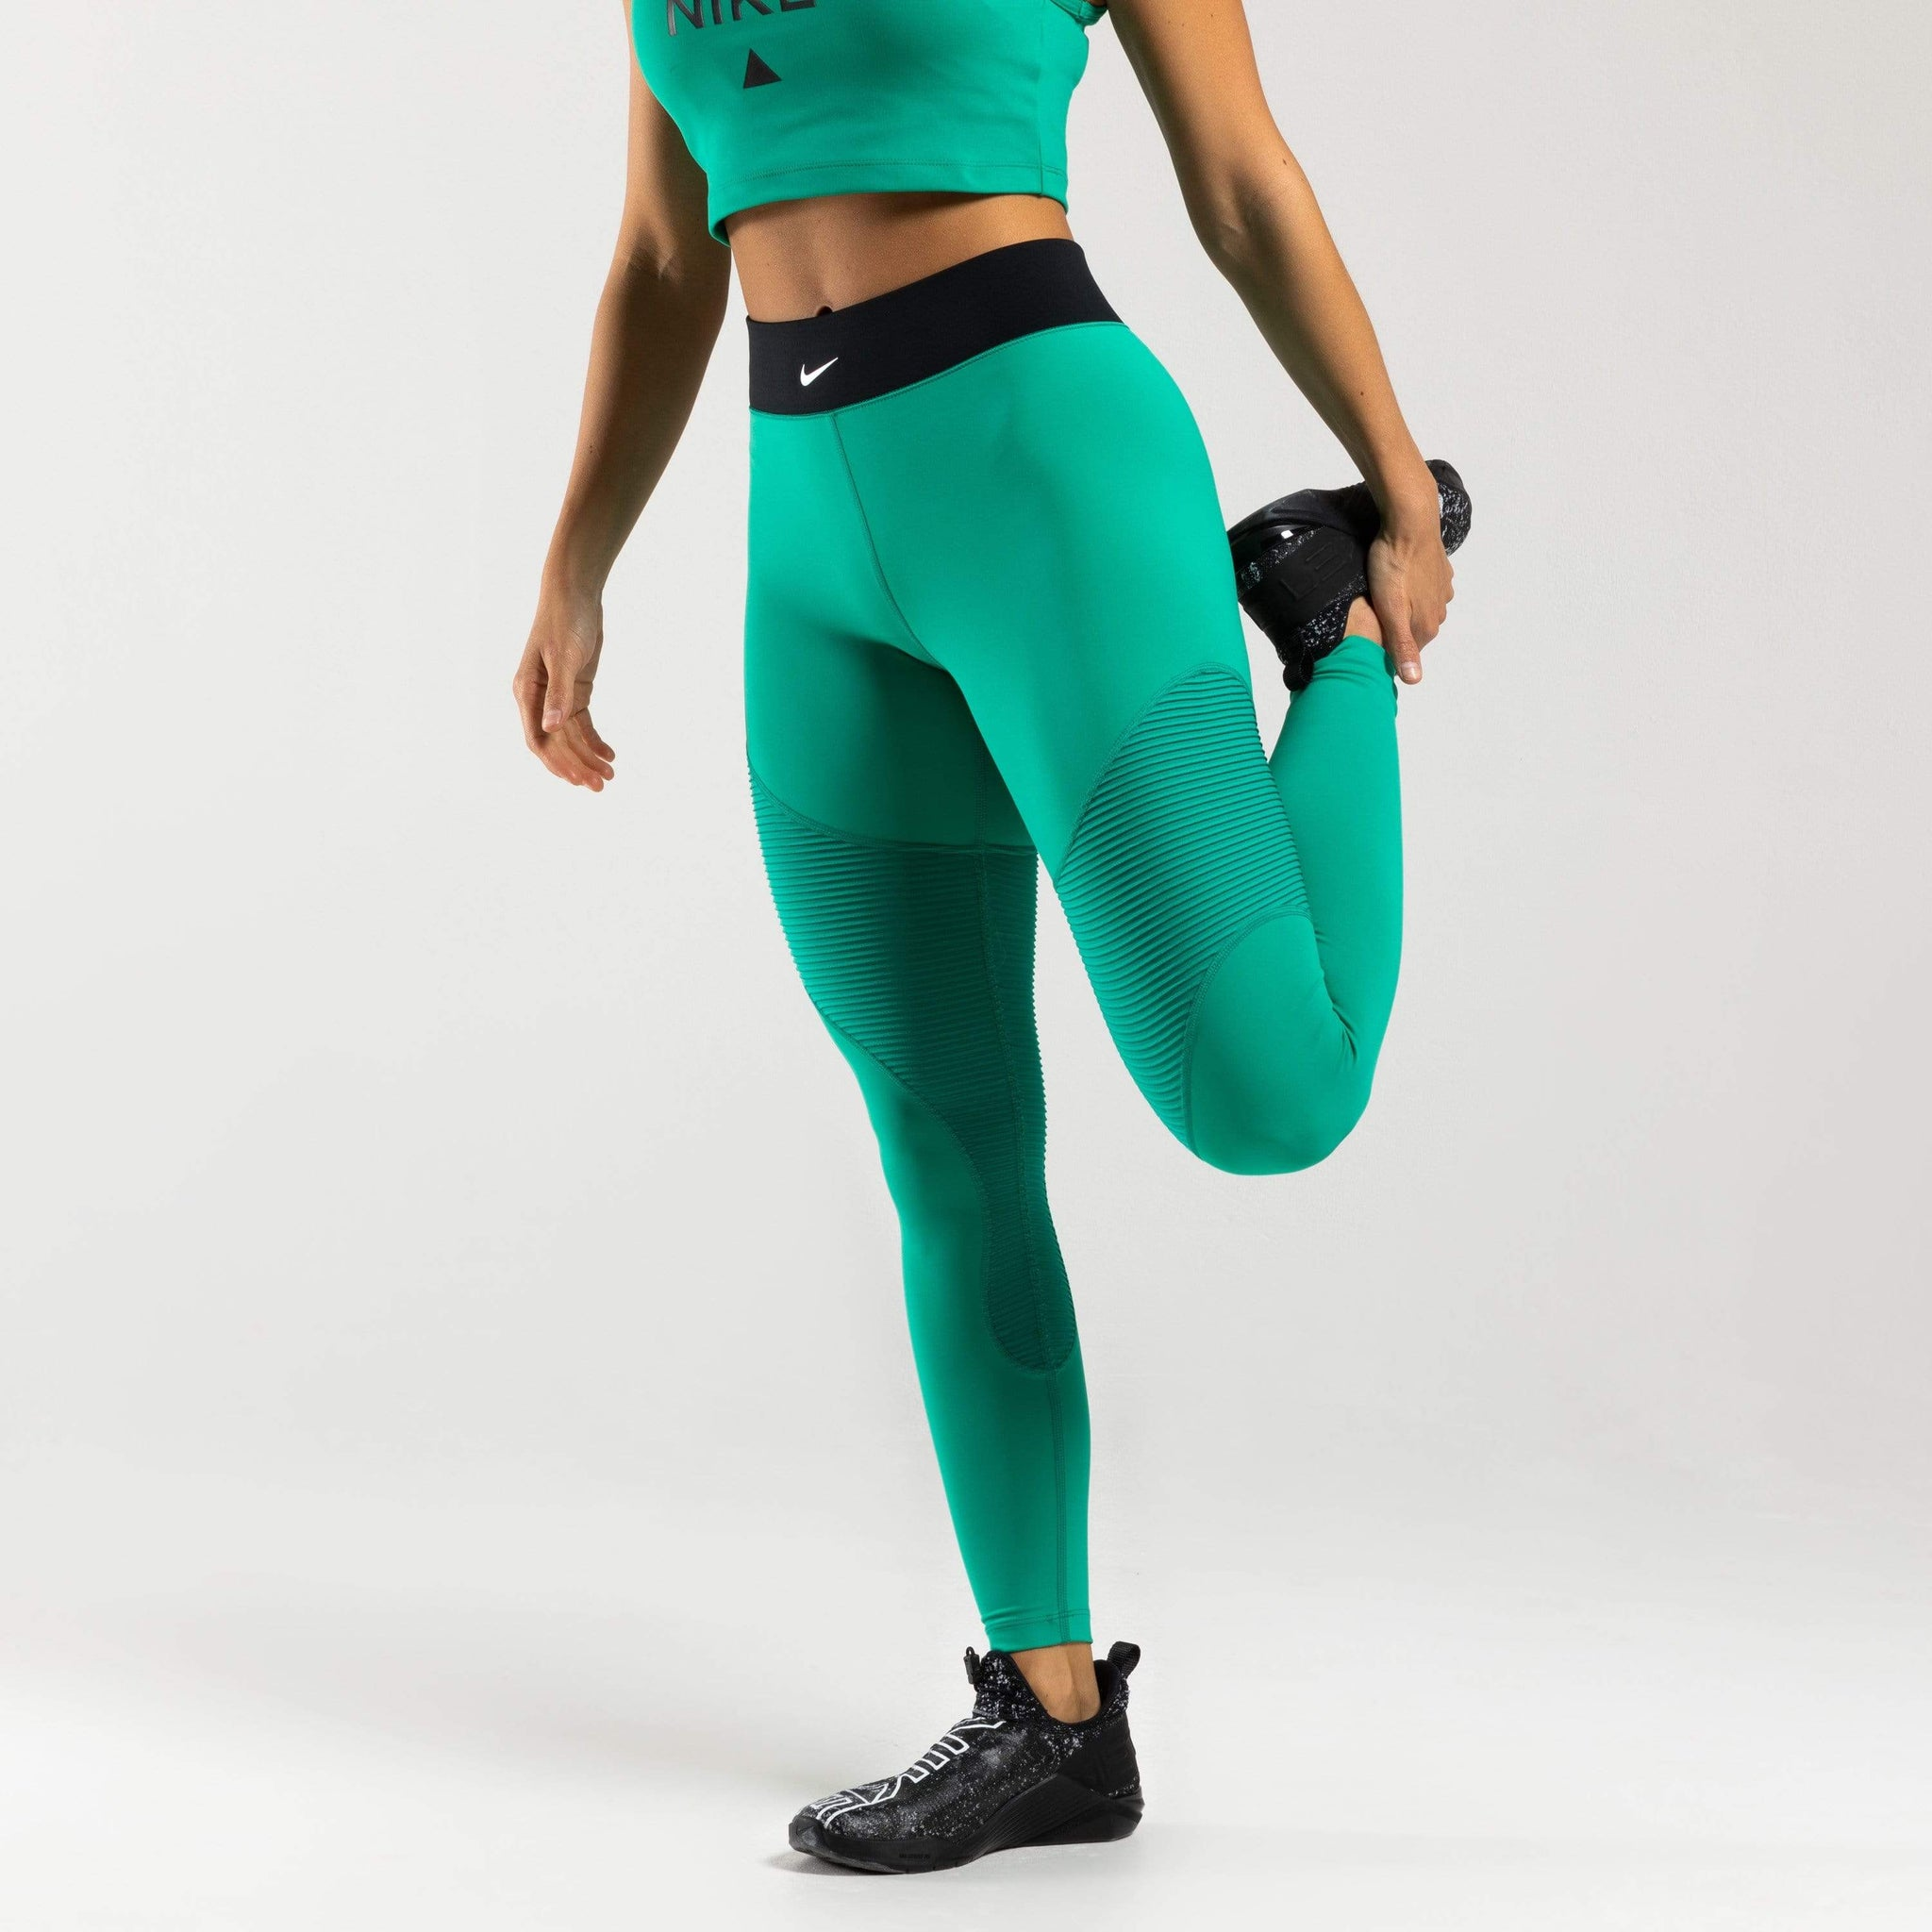 Nike Leggings Nike Pro AeroAdapt Leggings